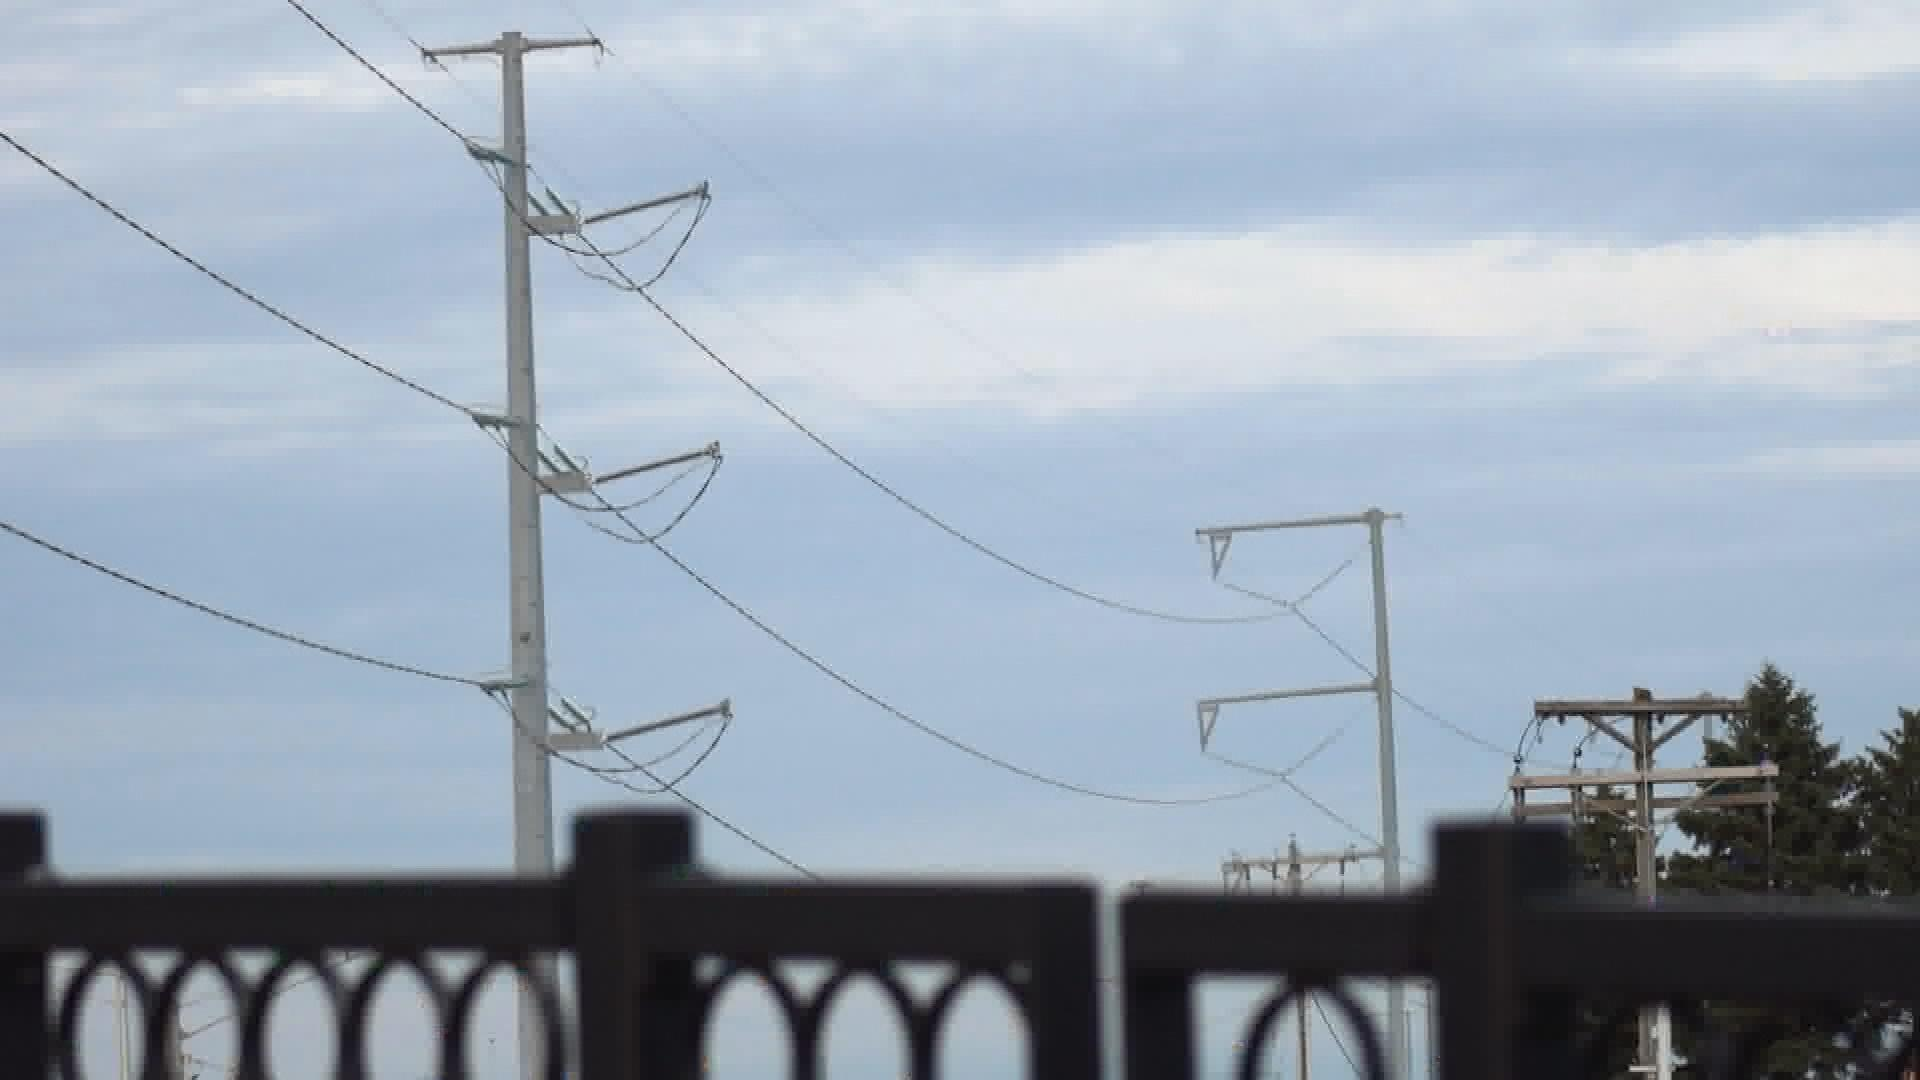 Other States Share Concern Over Wisconsin Power Line